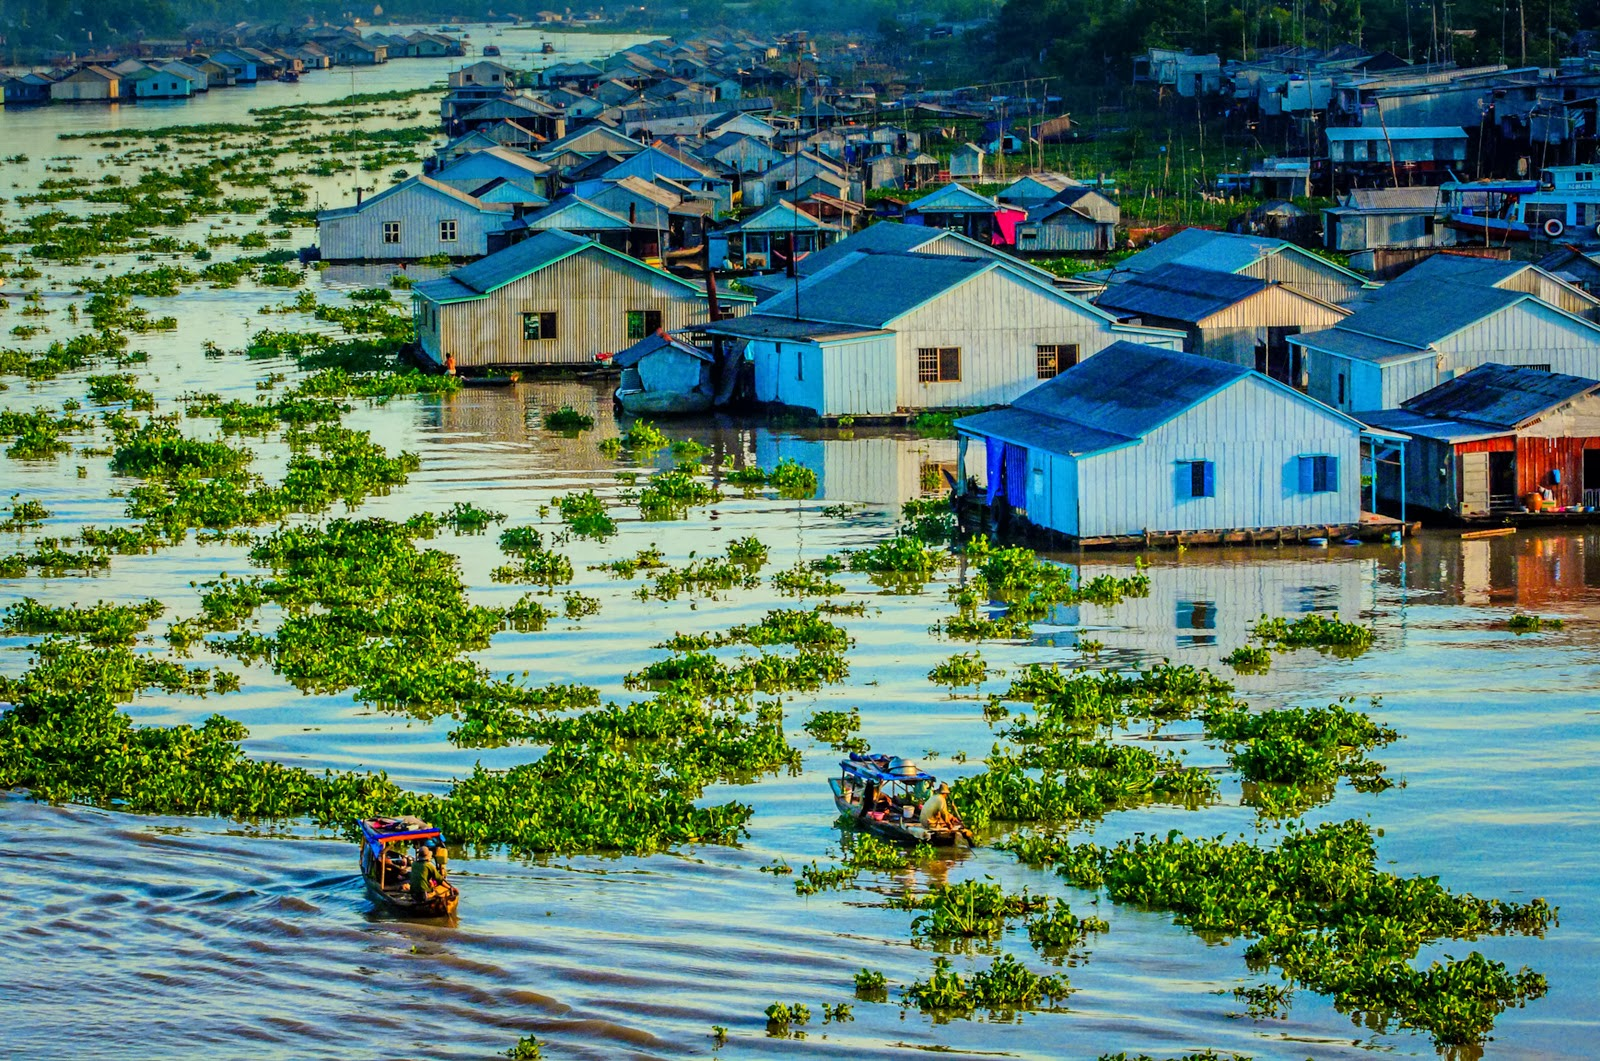 Floating houses in Mekong Delta